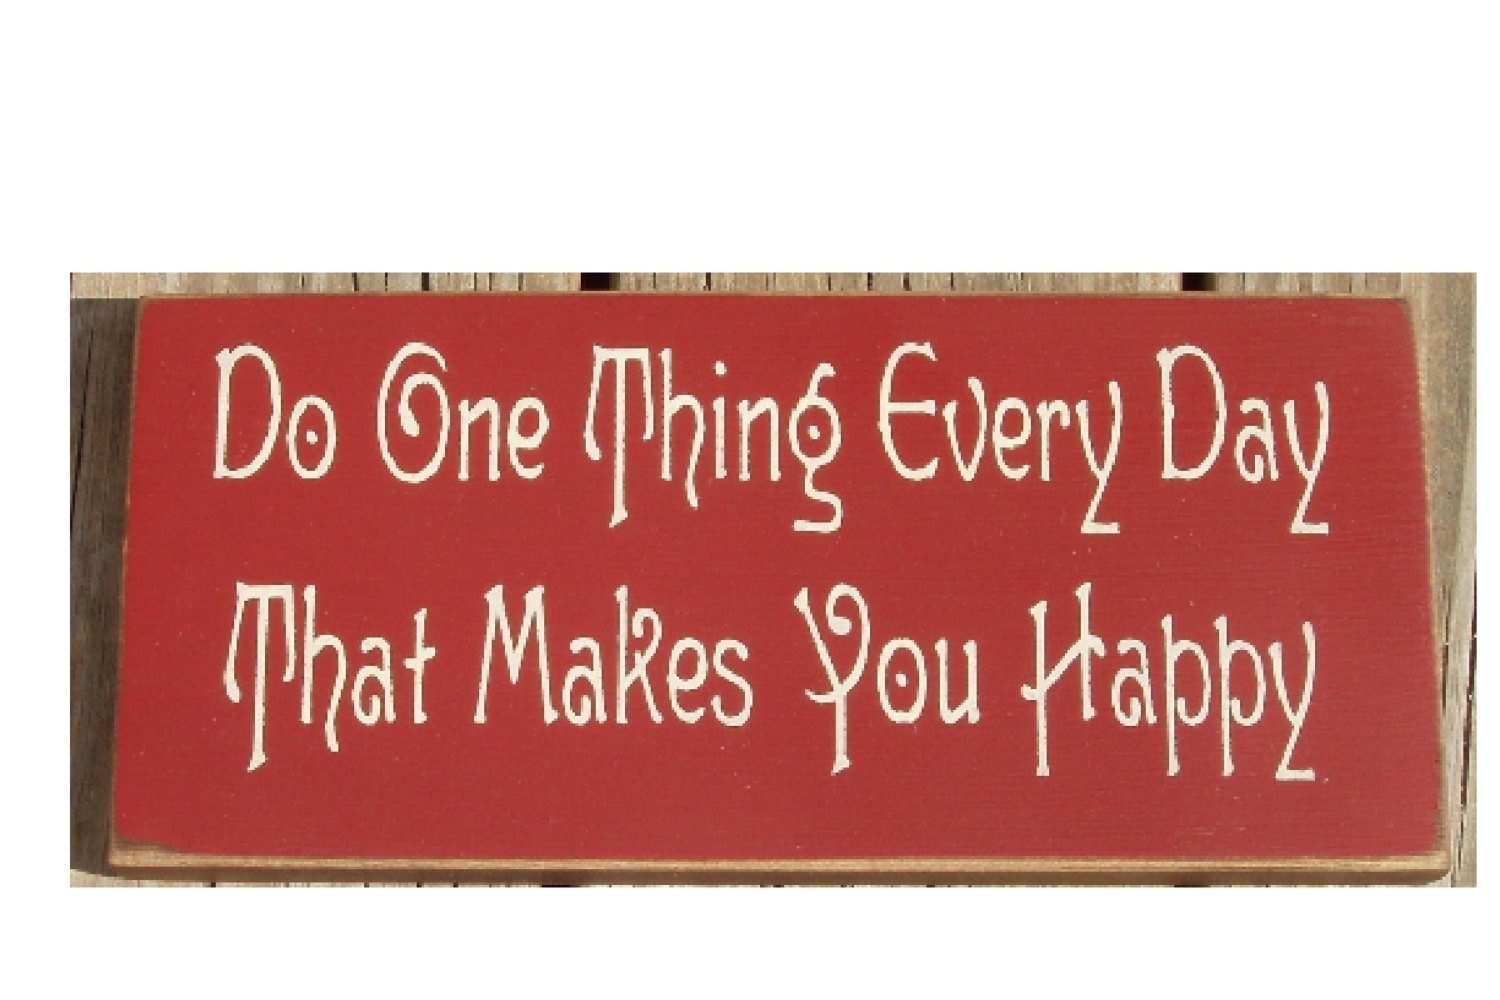 Ruskin352 Do one thing every day that makes you happy primitive distressed style handmade wood plaque wood sign.